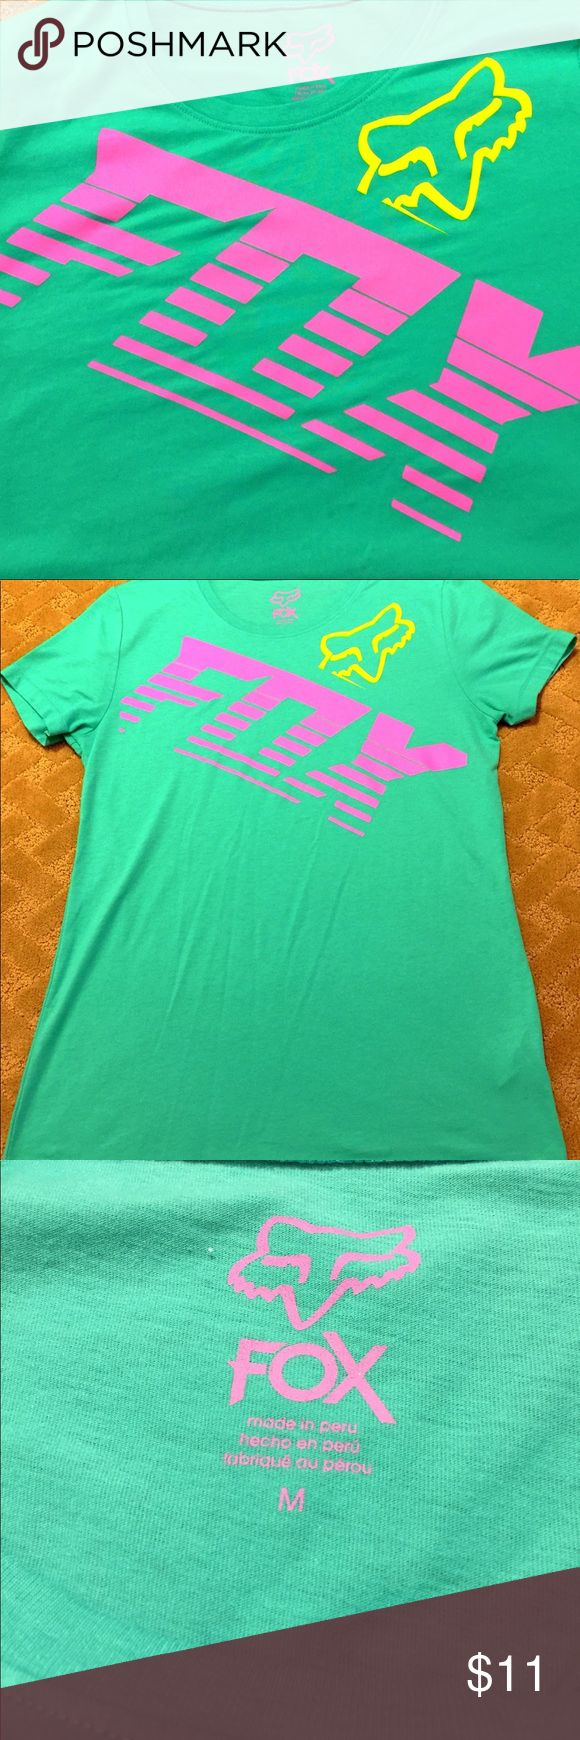 Fox Racing Womens Mint Green Pink Logo T-Shirt This is a gently used still in great condition Fox Racing Womens Mint Green Crew Neck T-Shirt in Mint Green with Pink Fox Logo. Fox Tops Tees - Short Sleeve